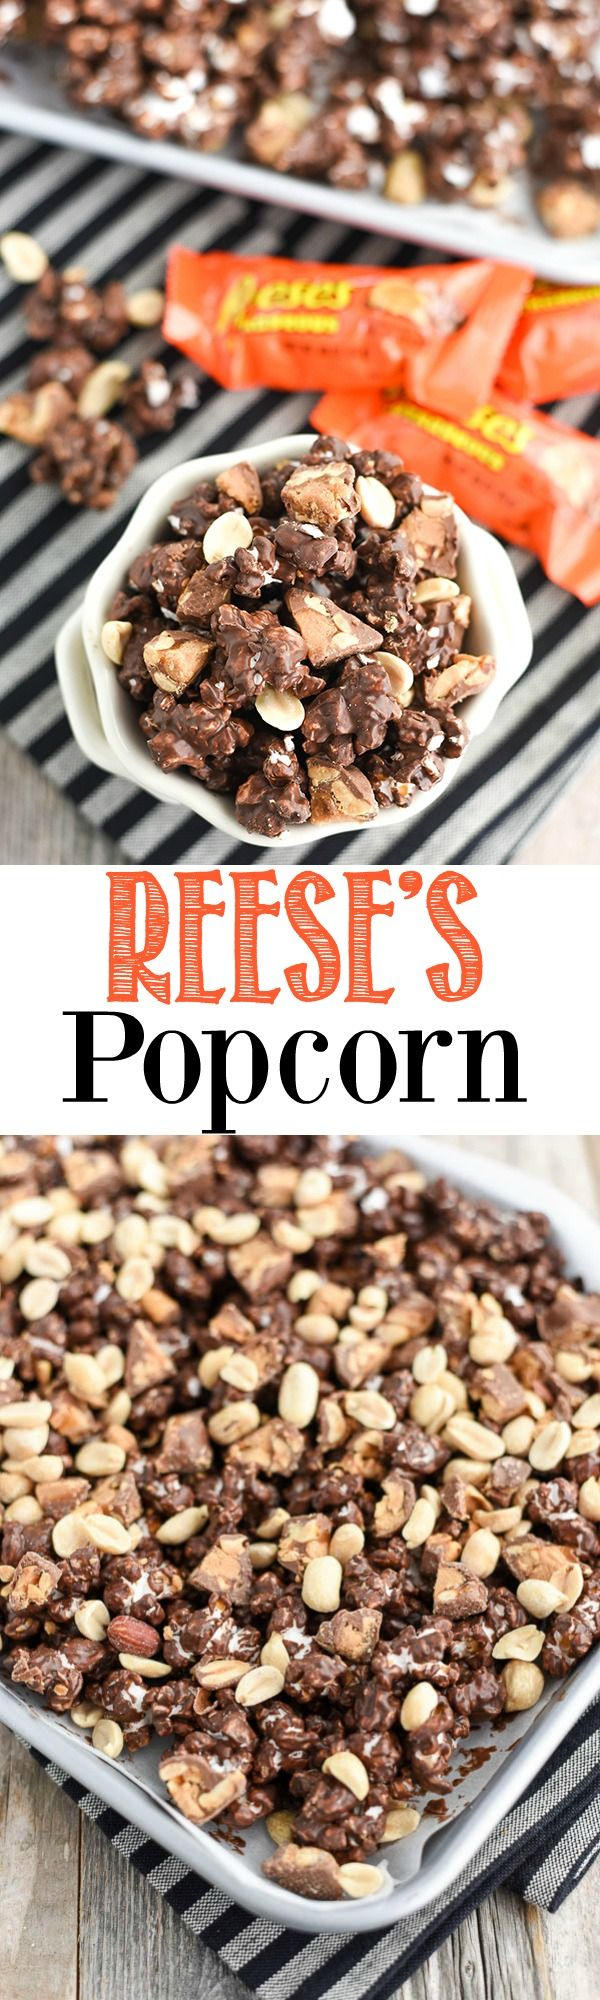 Reese's Chocolate Popcorn - chocolate covered popcorn made with Reese's Nutrageous bars and peanuts. MichaelsMakers A Pumpkin And A Princess